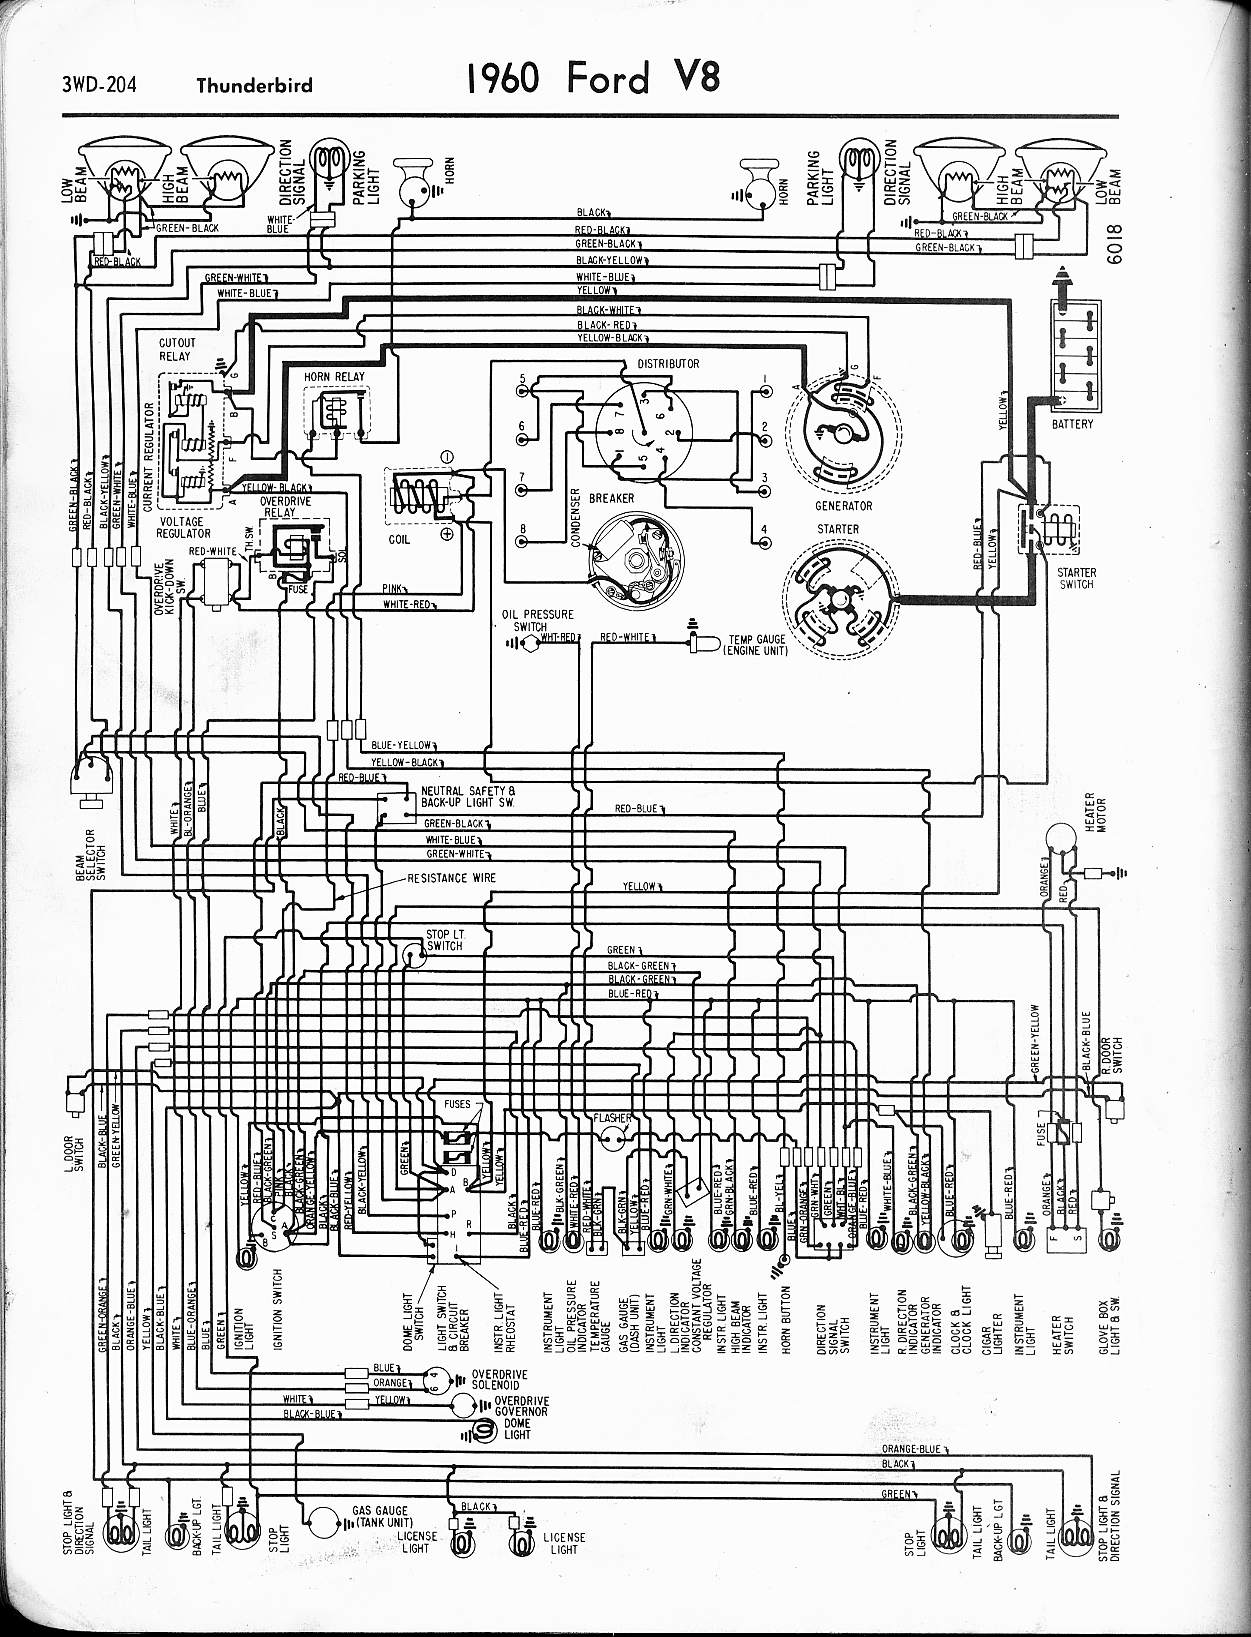 1960 ford truck wiring diagram wiring diagram document guide Split Unit Air Conditioner Wiring Diagram 1960 ford truck wiring diagrams online wiring diagram 65 ford truck wiring diagram 1960 ford truck wiring diagram